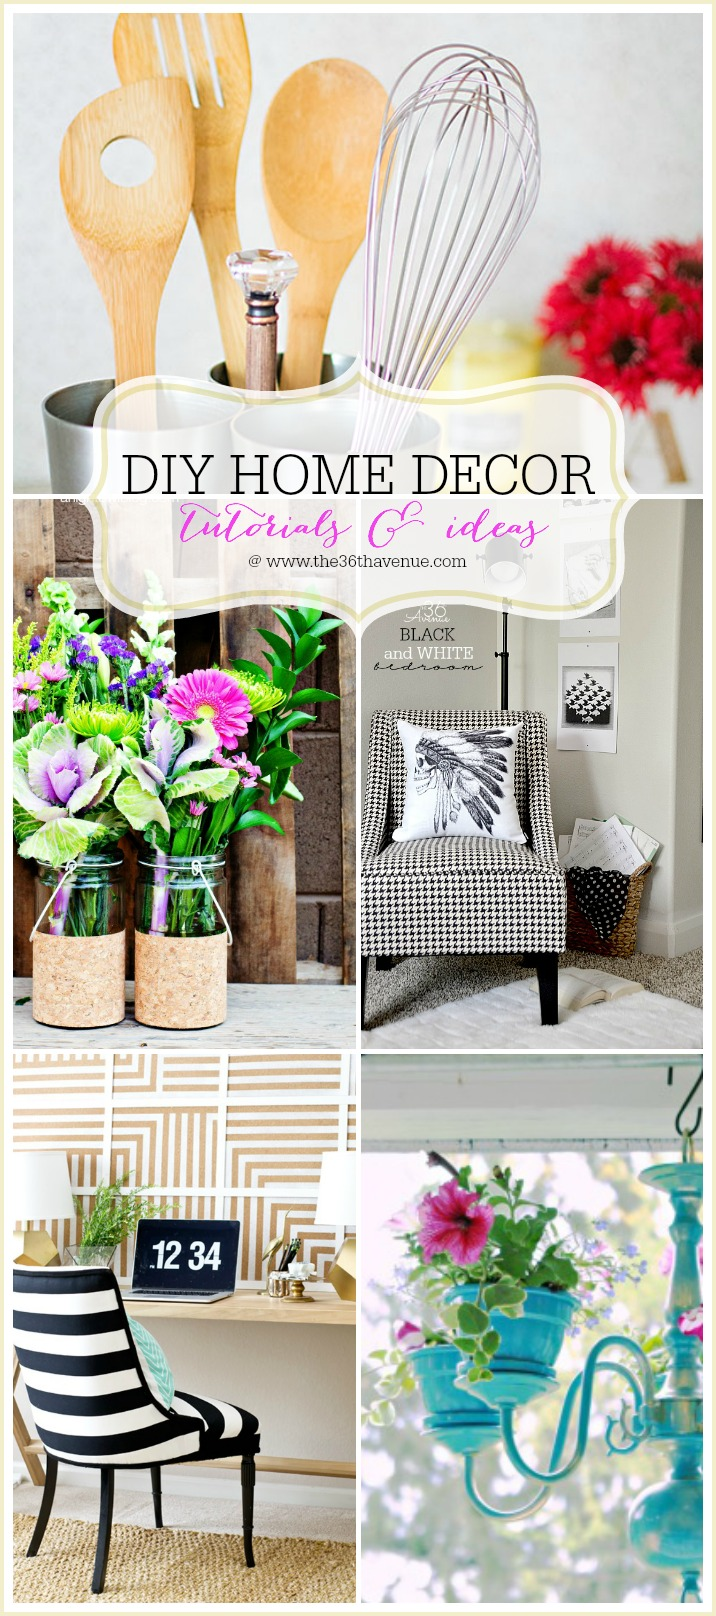 The 36th avenue home decor diy projects the 36th avenue - Home decor ideas diy ...